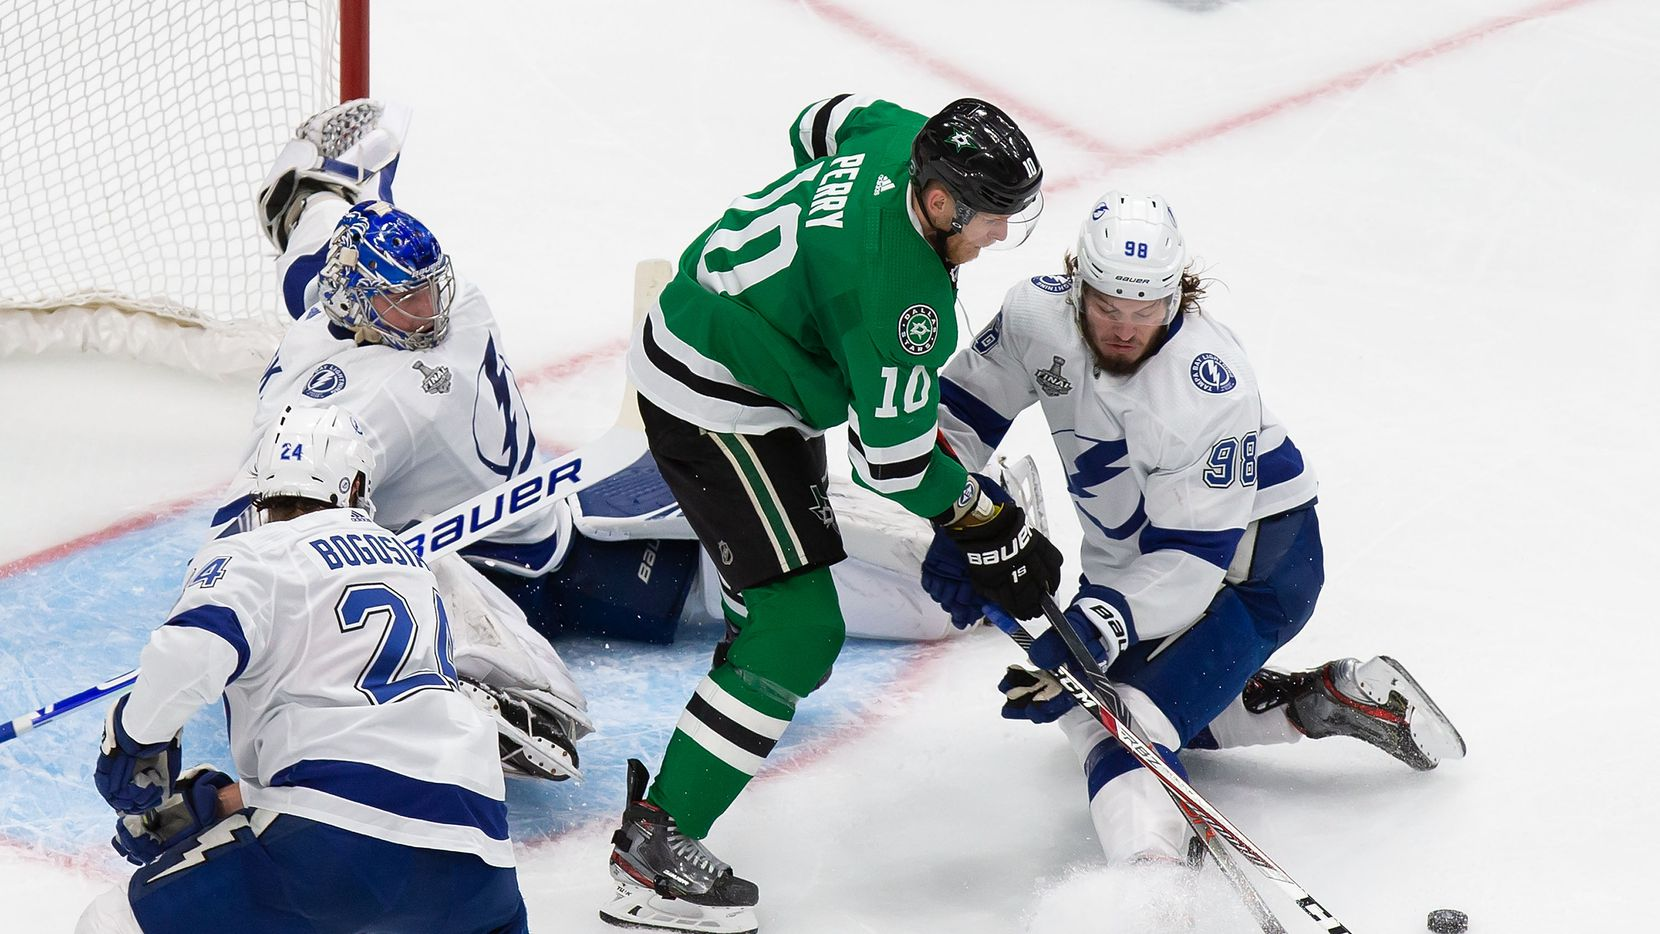 Corey Perry (10) of the Dallas Stars battles against goaltender Andrei Vasilevskiy (88) and Mikhail Sergachev (98) of the Tampa Bay Lightning during Game Six of the Stanley Cup Final at Rogers Place in Edmonton, Alberta, Canada on Monday, September 28, 2020.